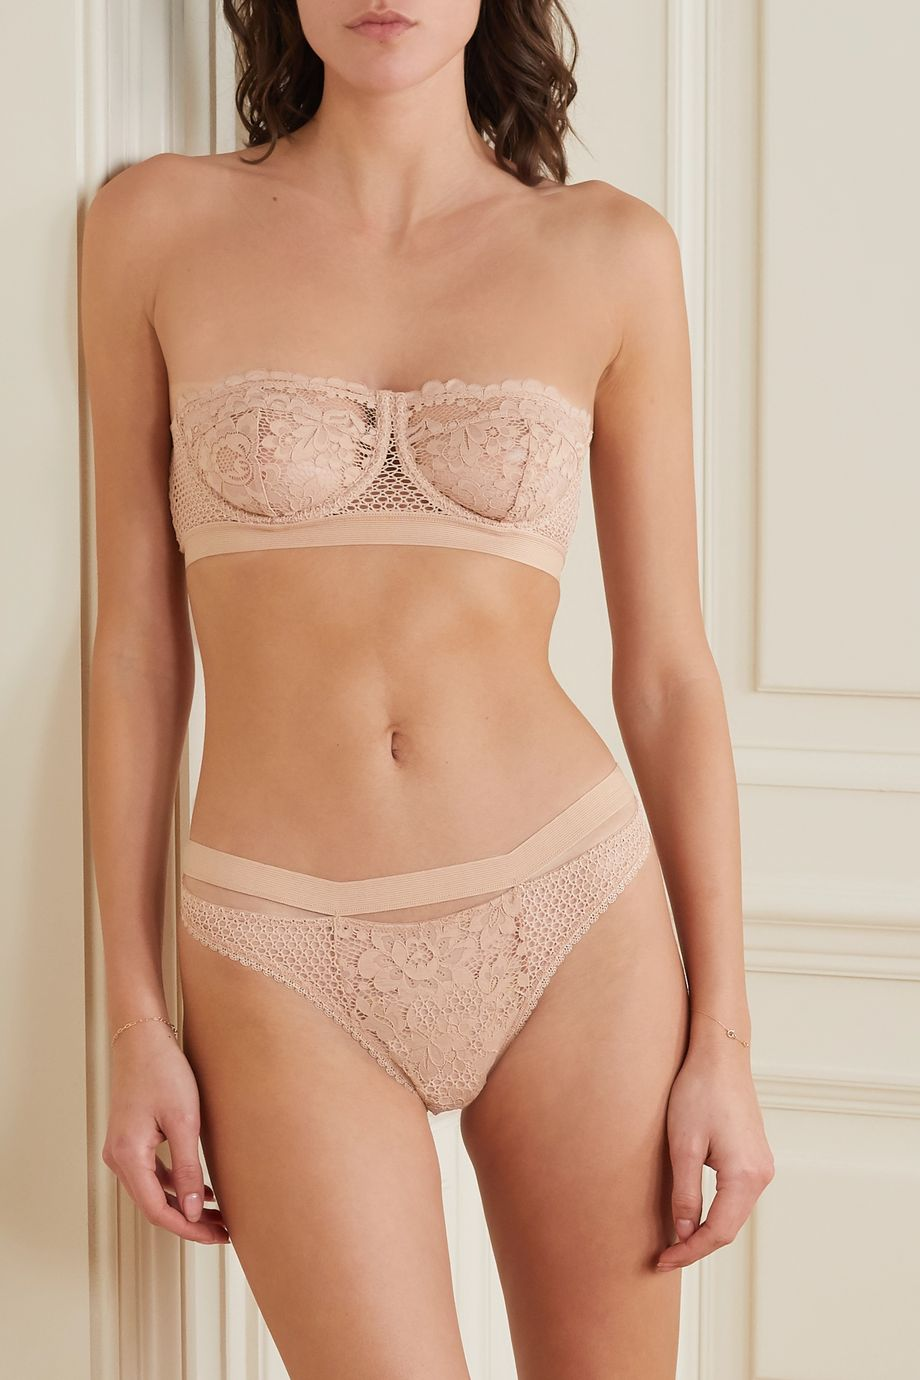 ELSE Petunia stretch-mesh and corded lace underwired strapless balconette bra